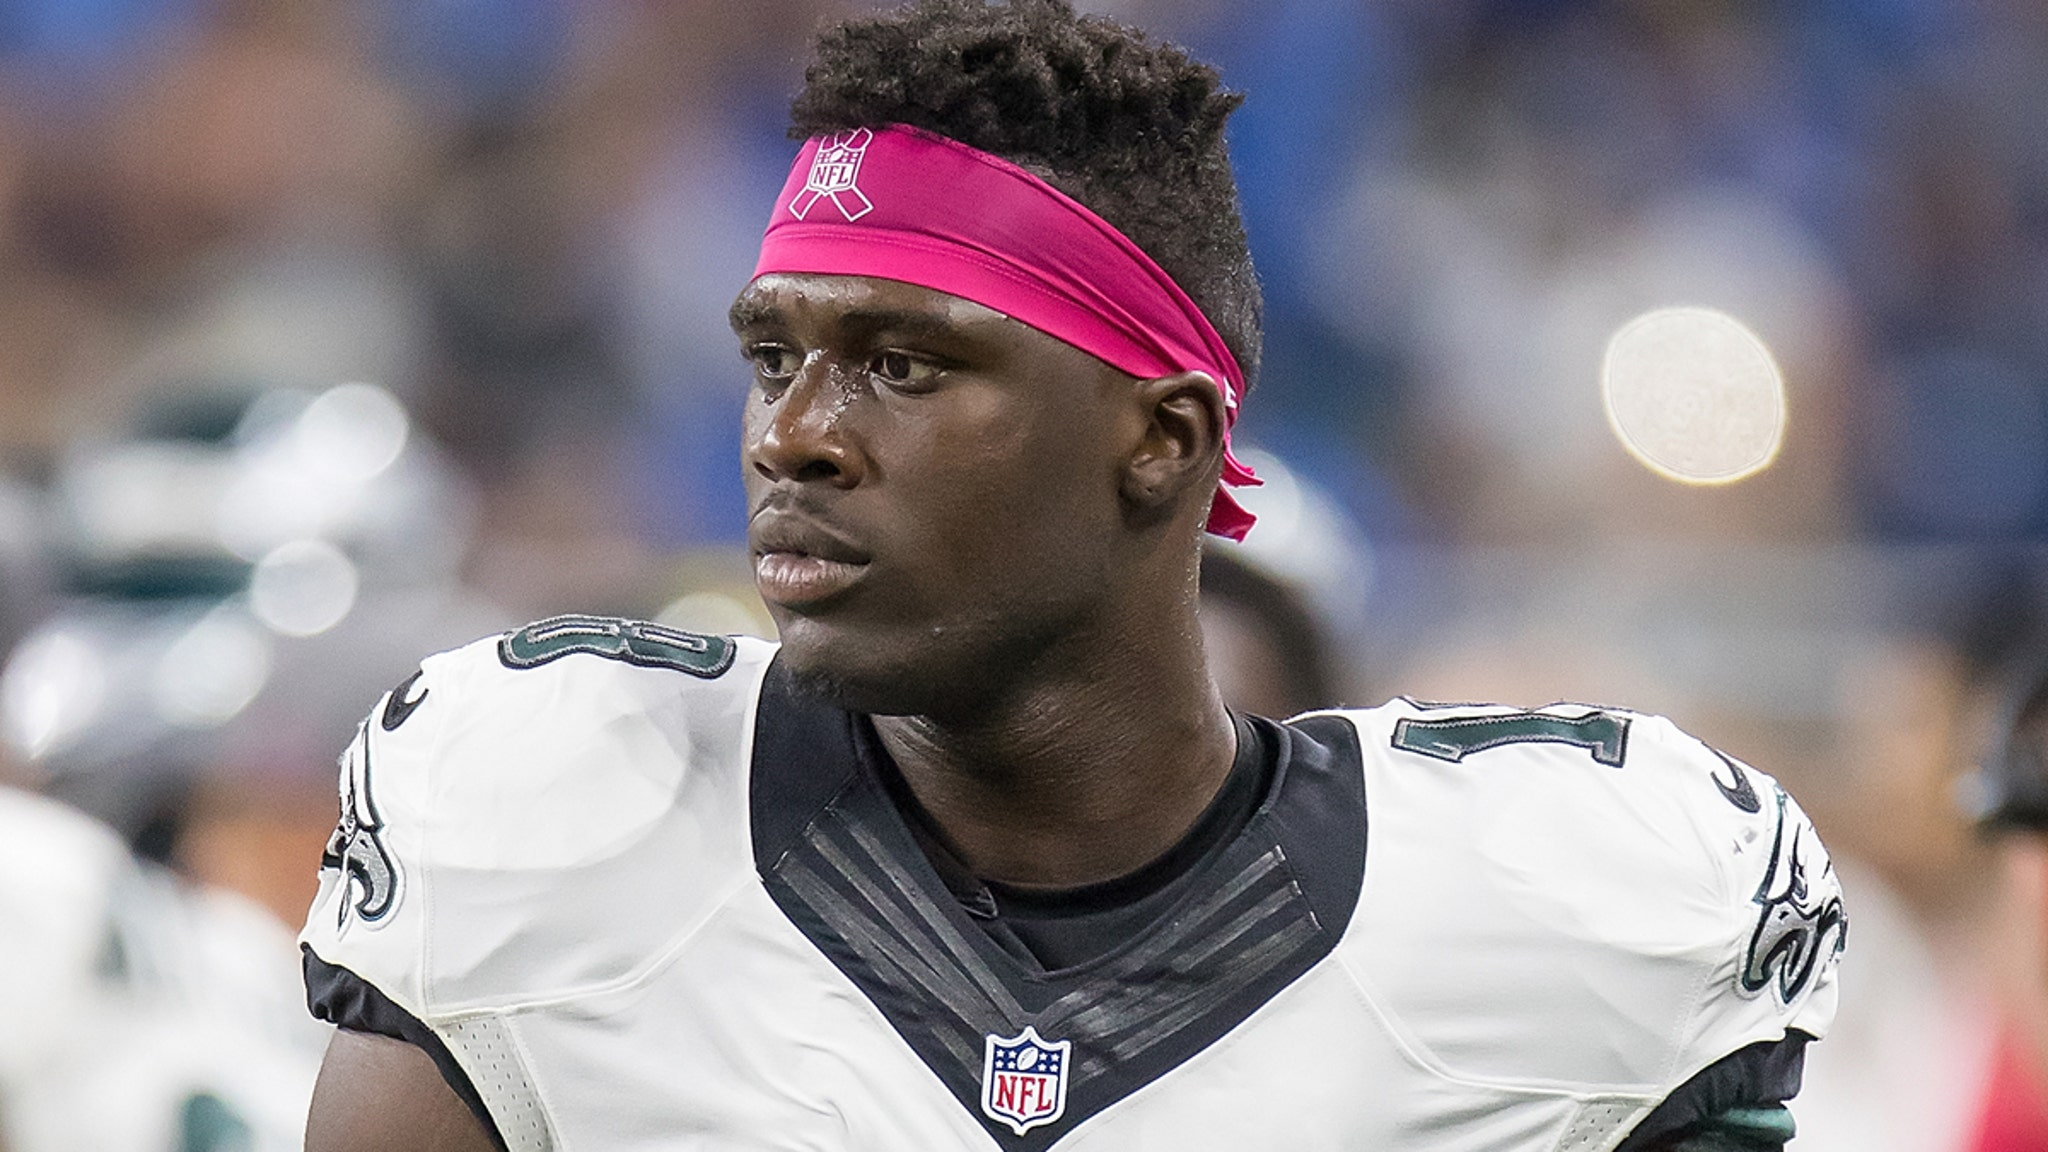 Dorial Green-Beckham Pleads Guilty In Weed Case, Gets